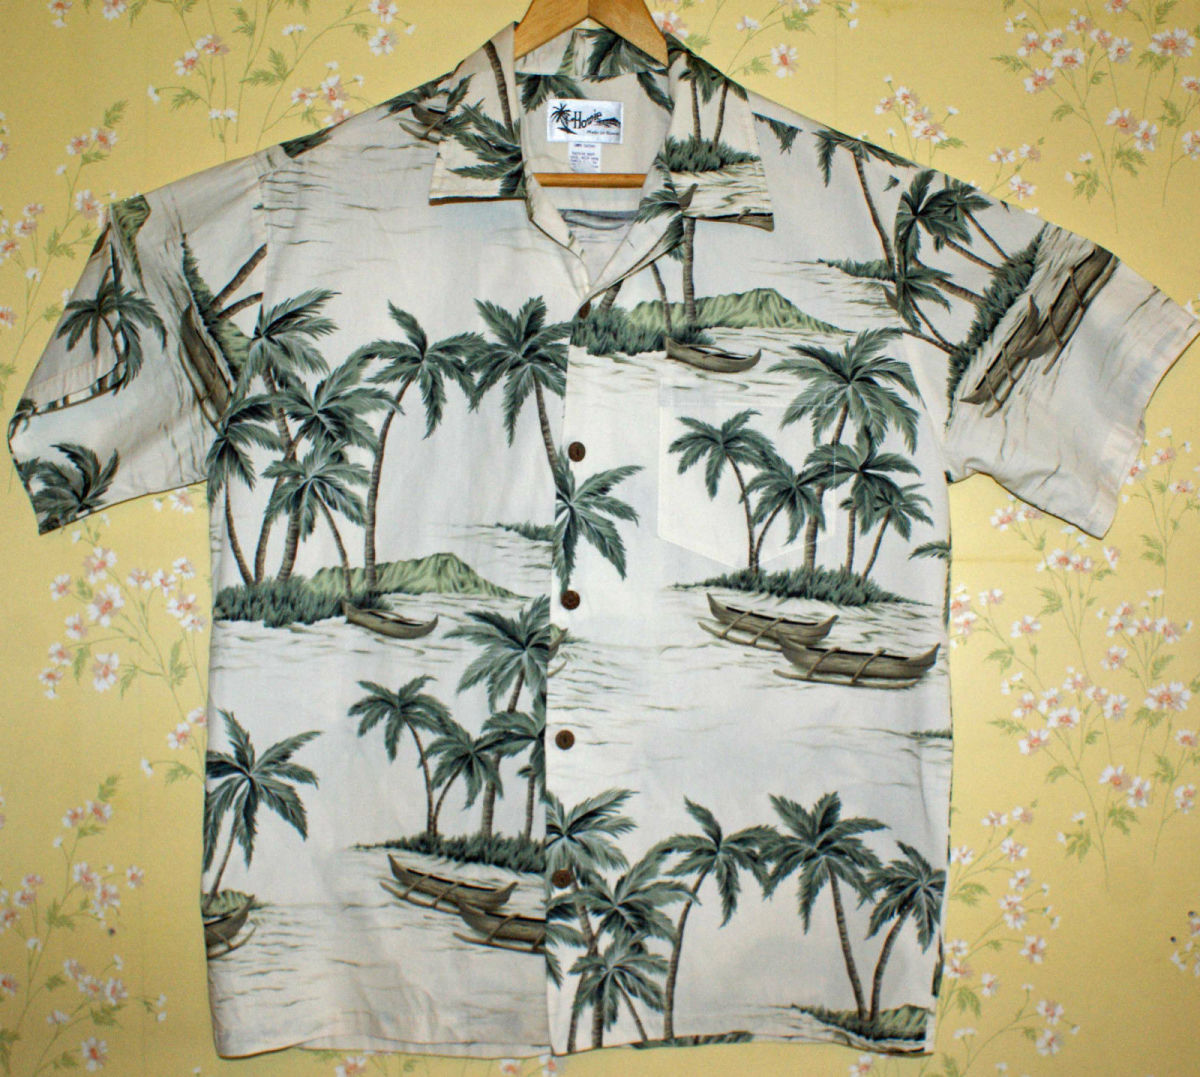 This is a beautiful vintage men's Hawaiian shirt made by the world famous Howie of Hawaii shirt company.